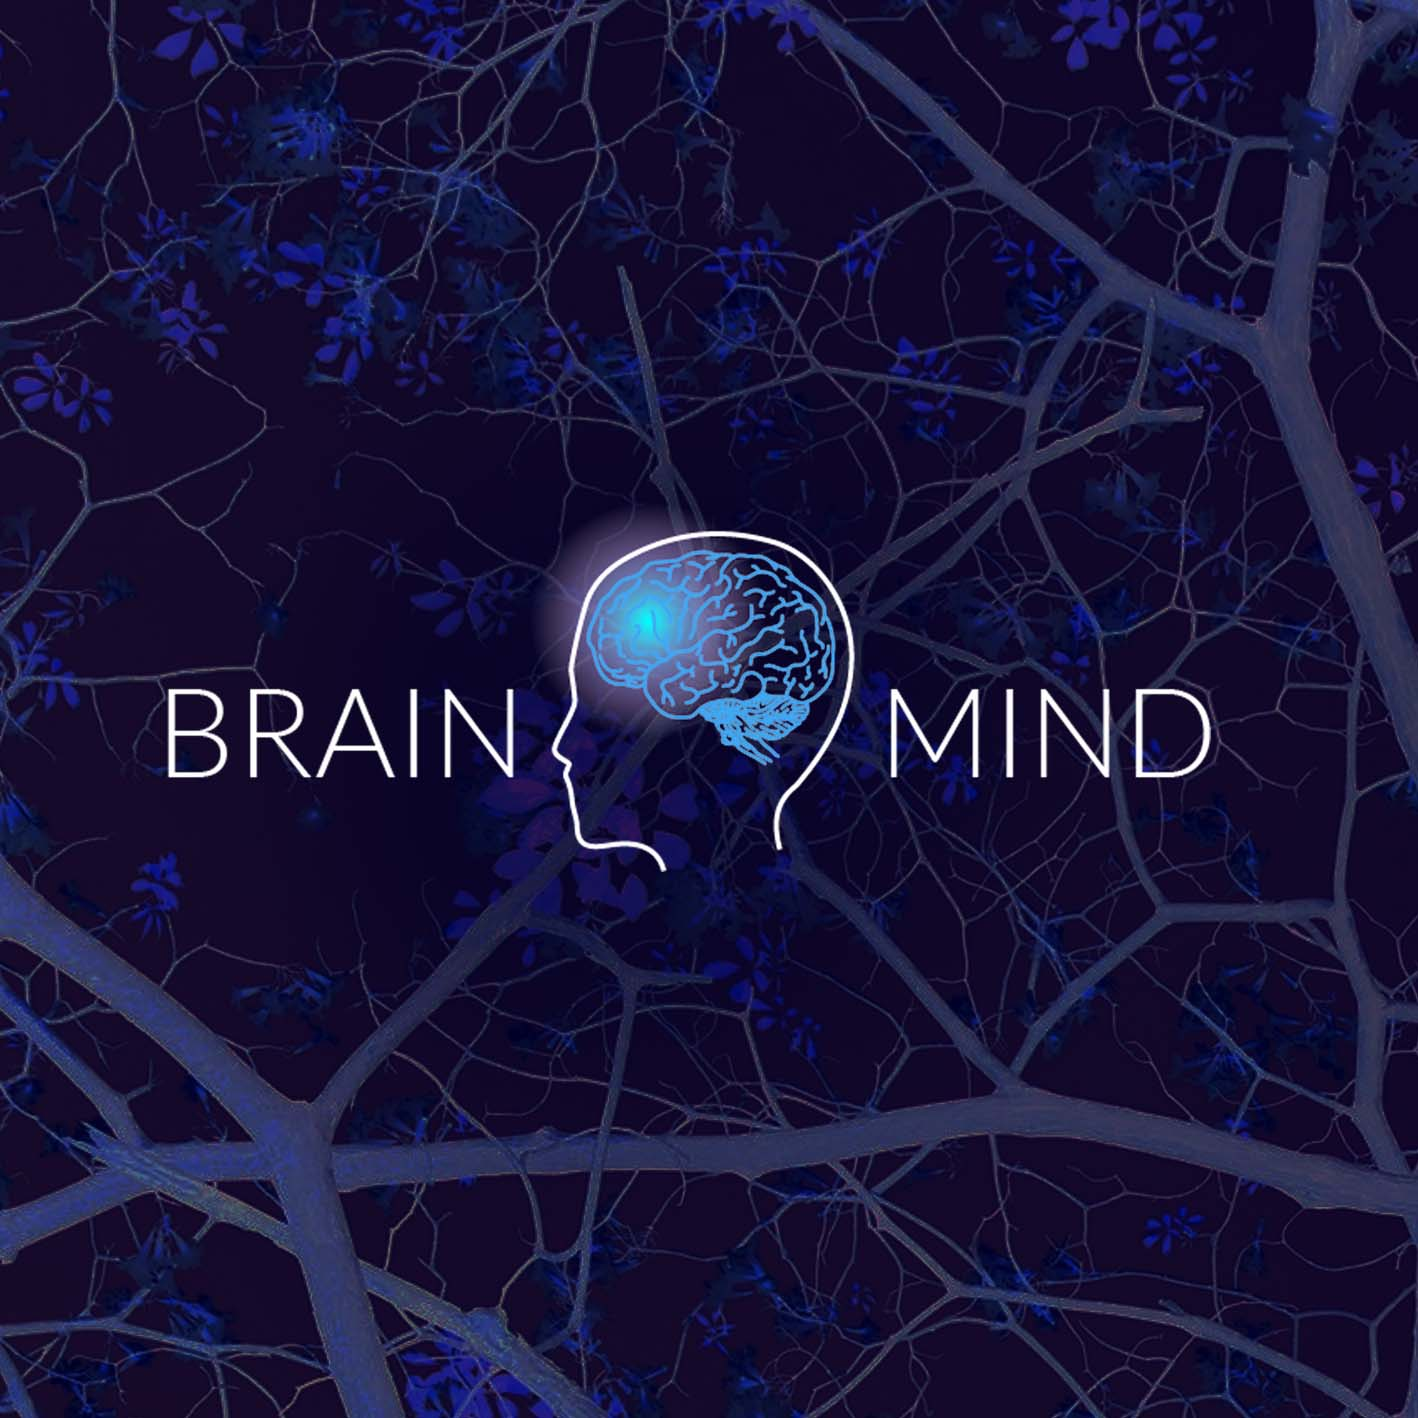 BRAINMIND - A vibrant neuroscience ecosystem bringing together the top scientists, entrepreneurs, investors, and philanthropists in seeking to accelerate impactful innovation within the science of the brain and mind